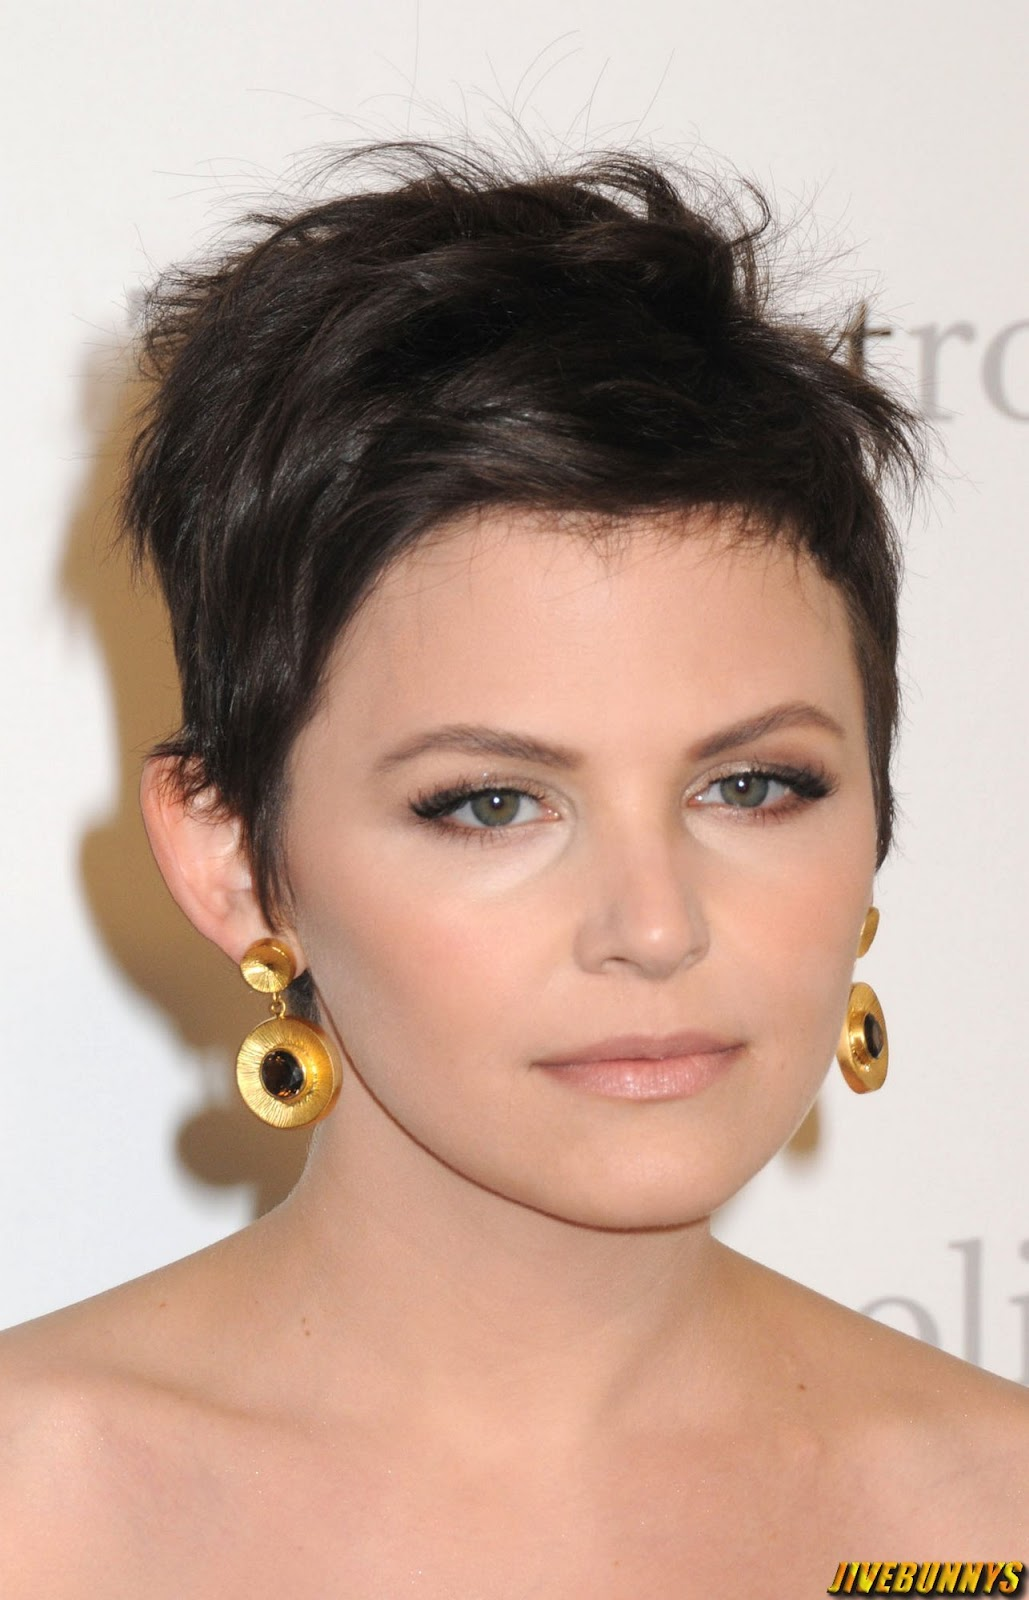 Jivebunnys Female Celebrity Picture Gallery: Ginnifer Goodwin Hot ... Beyonce Knowles